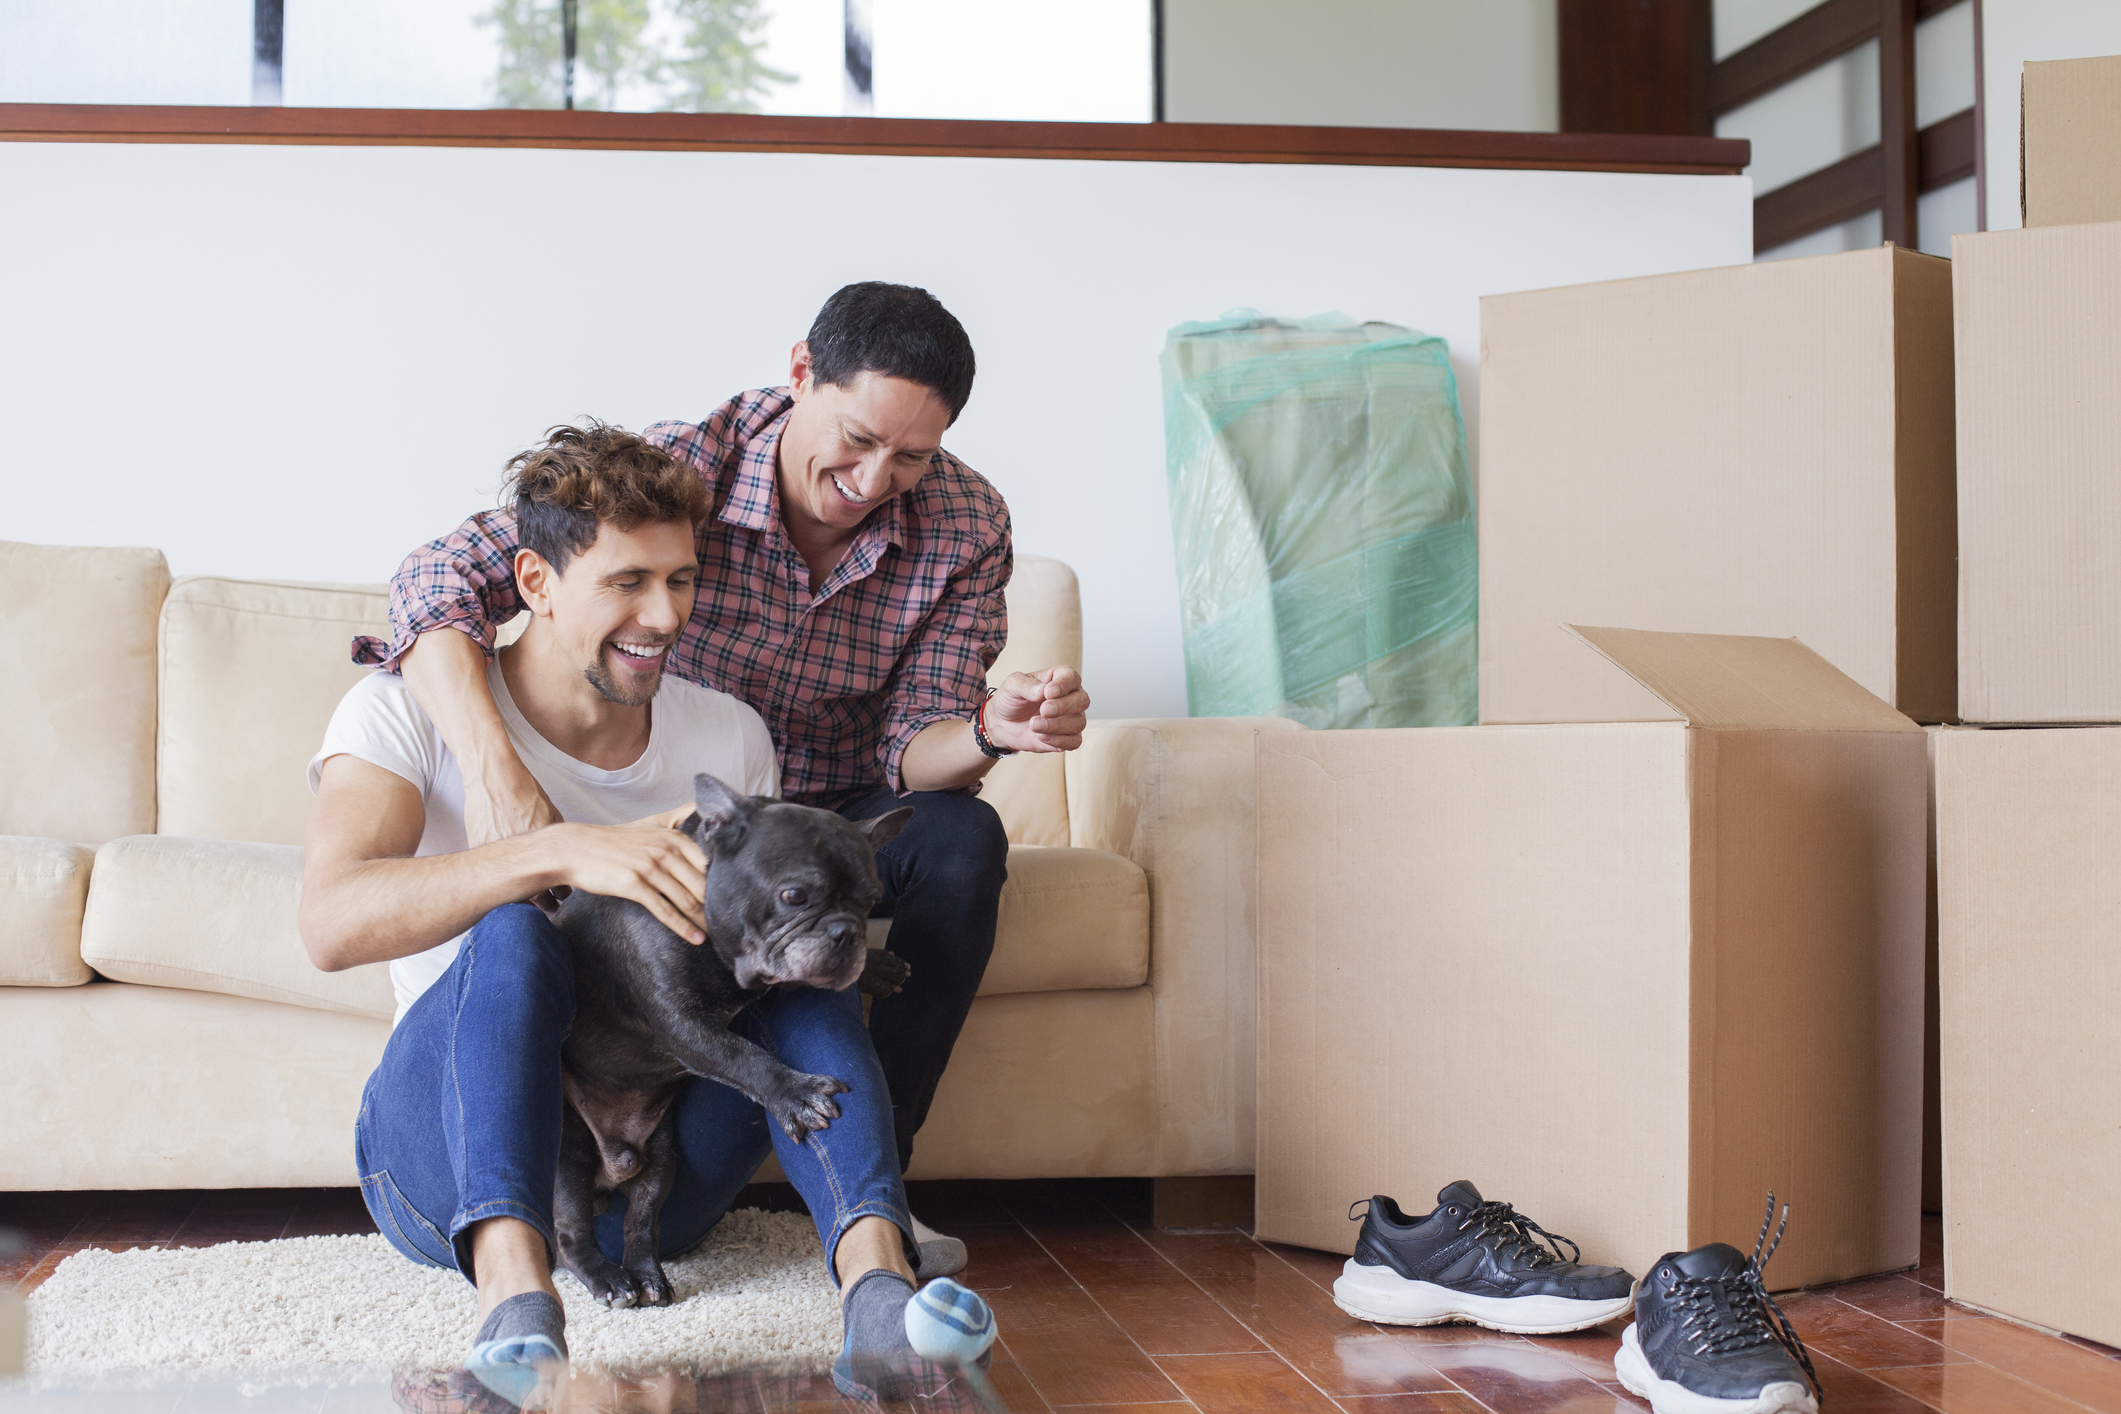 Two men and their dog move into a new home.